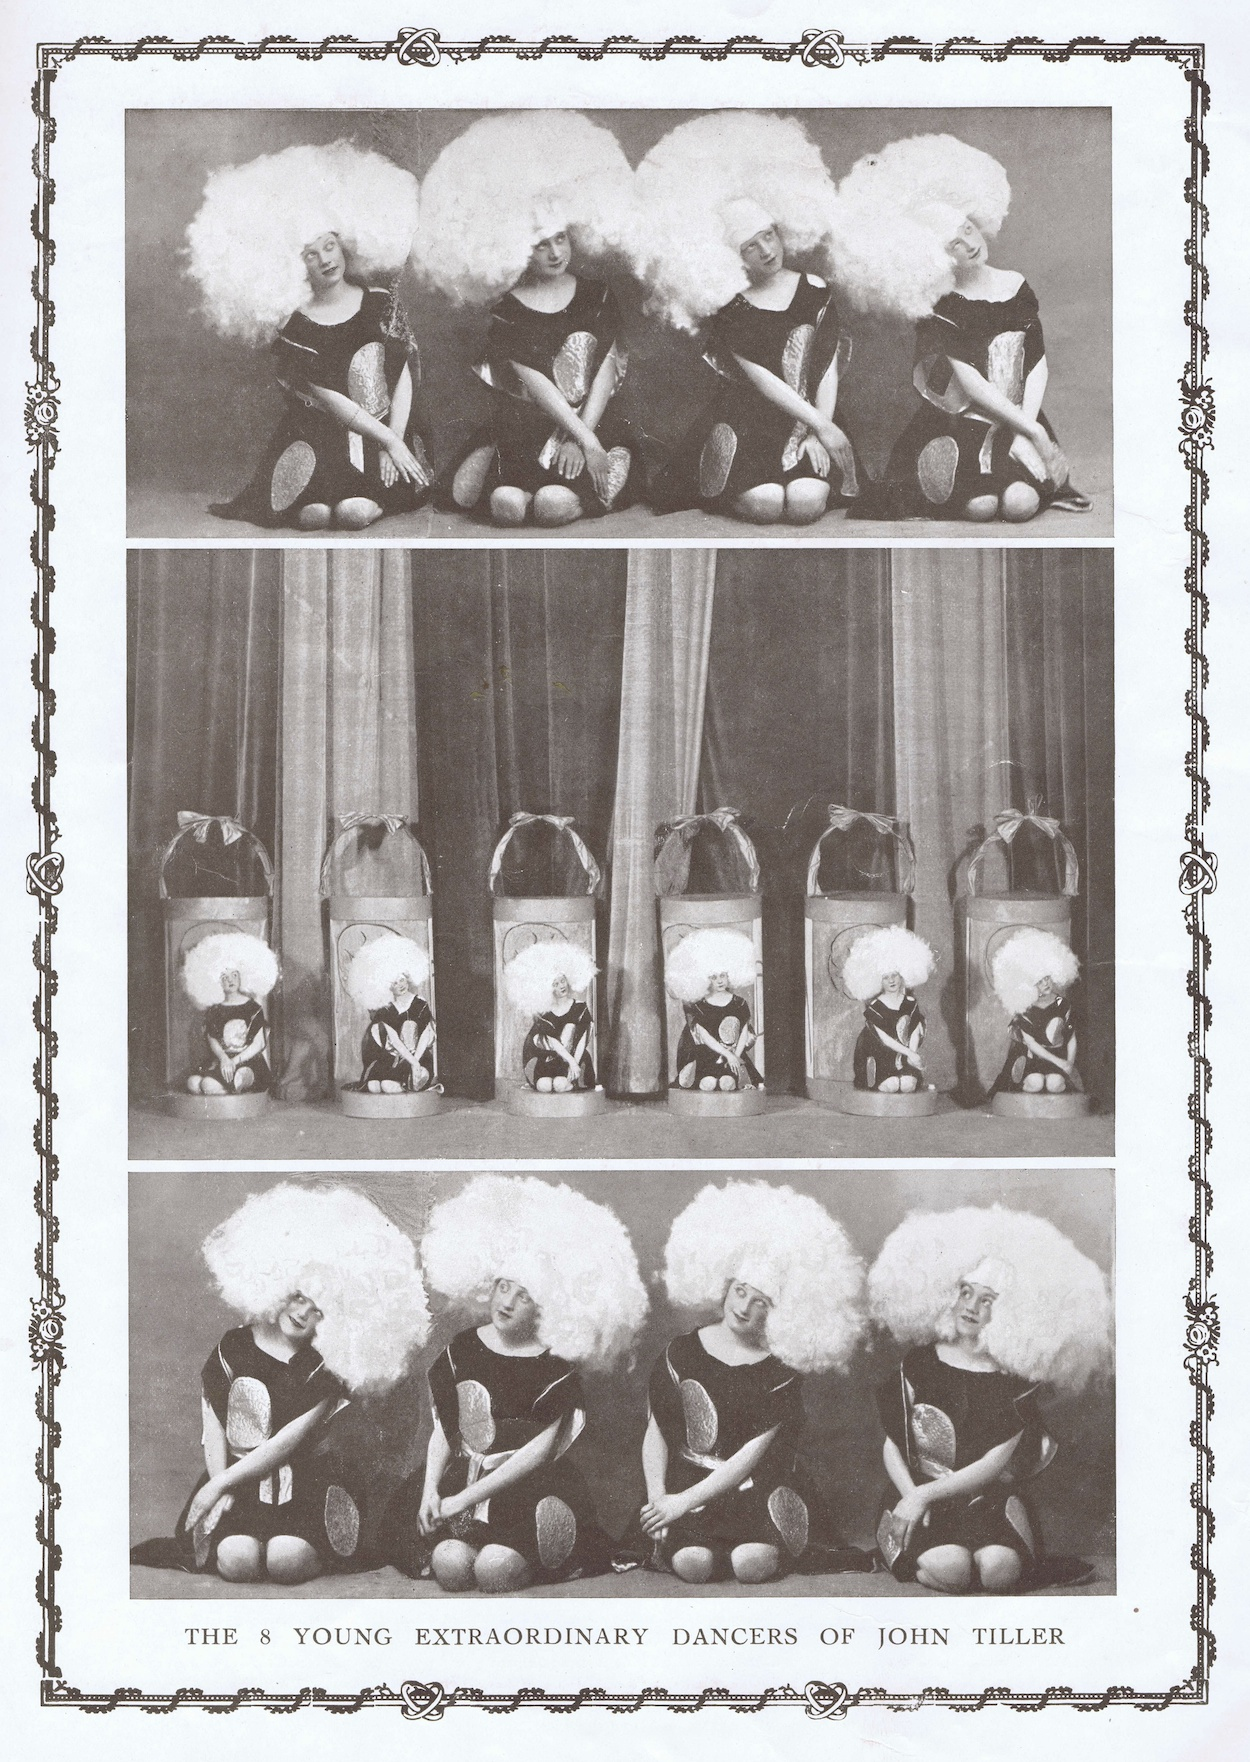 The O Ma Gaby scene in the 1923 En Pleine Folie show at the Folies Bergere, Paris, designed by Dolly Tree